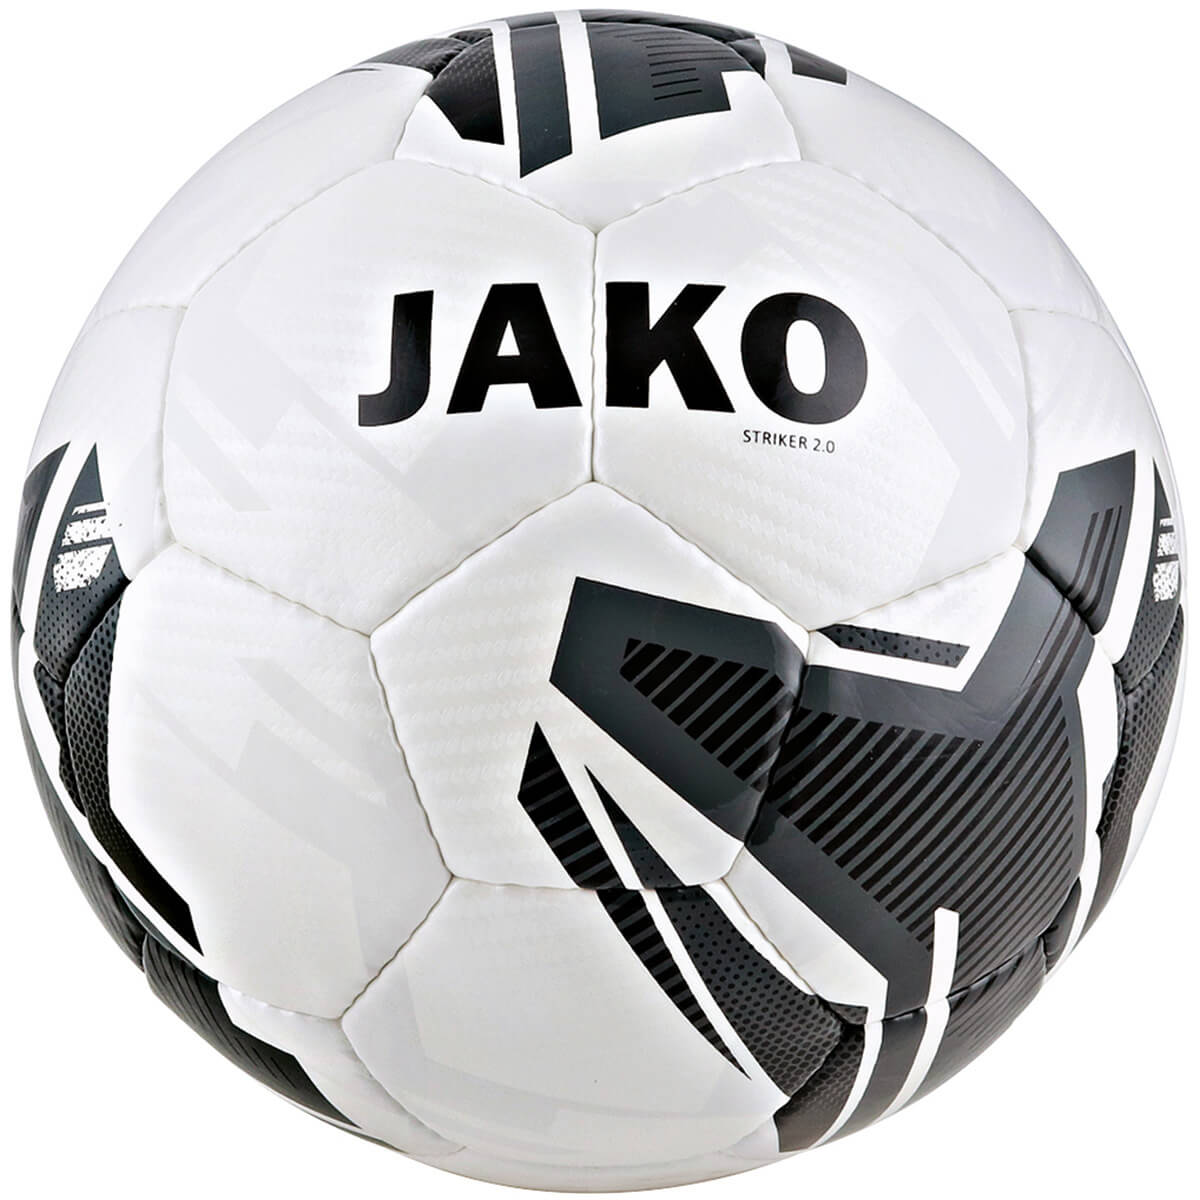 JAKO 2353-21 Ballon Entraînement Striker 2.0 Blanc/Anthracite